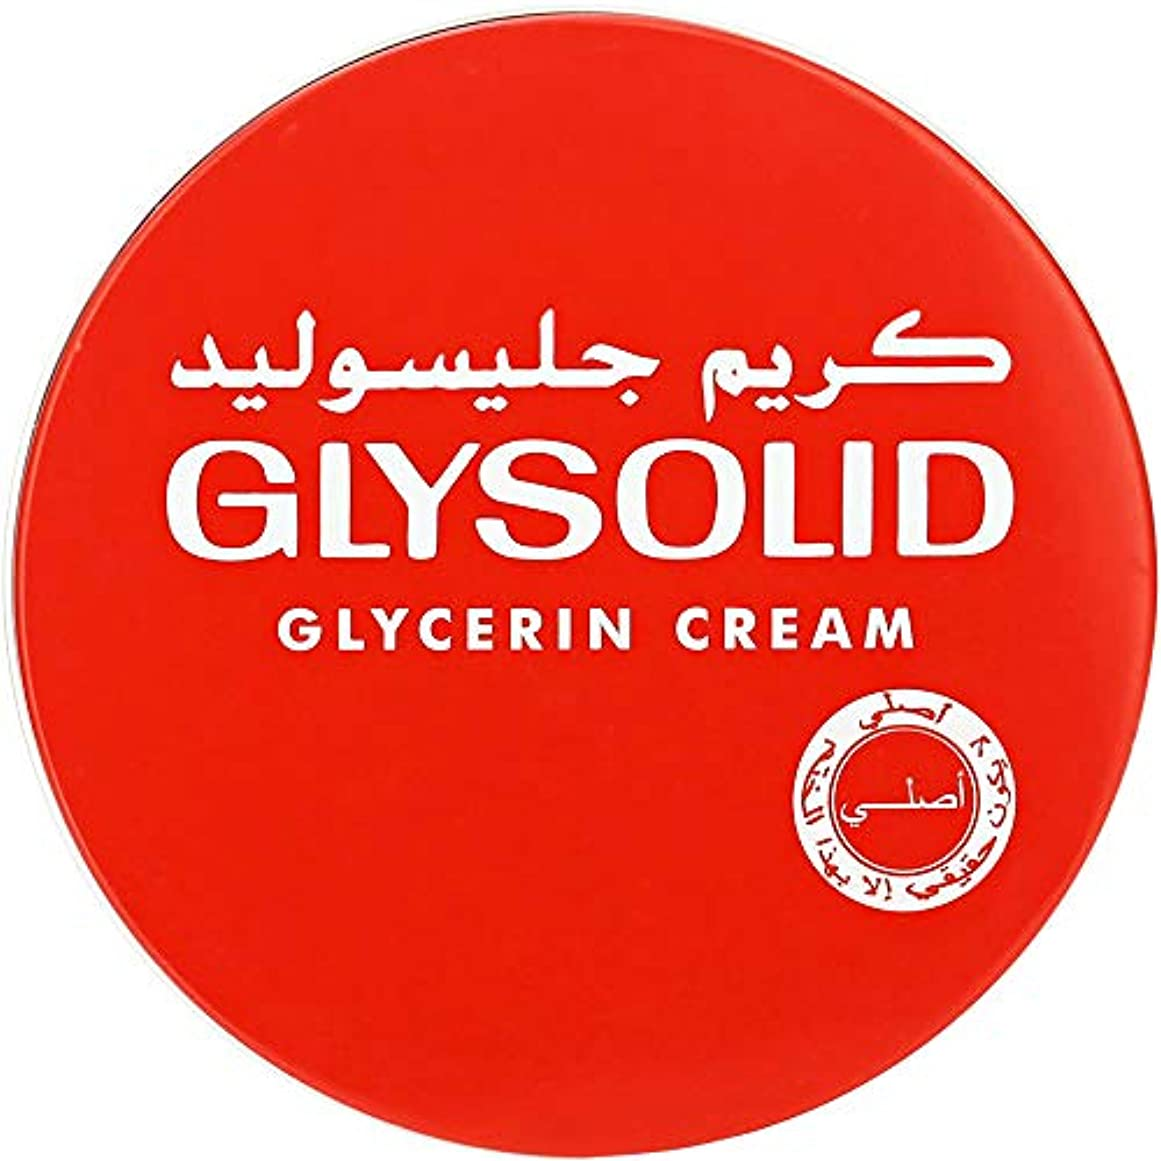 Glysolid Cream Face Moisturizers For Dry Skin Hands Feet Elbow Body Softening With Glycerin Keeping Your Skin...